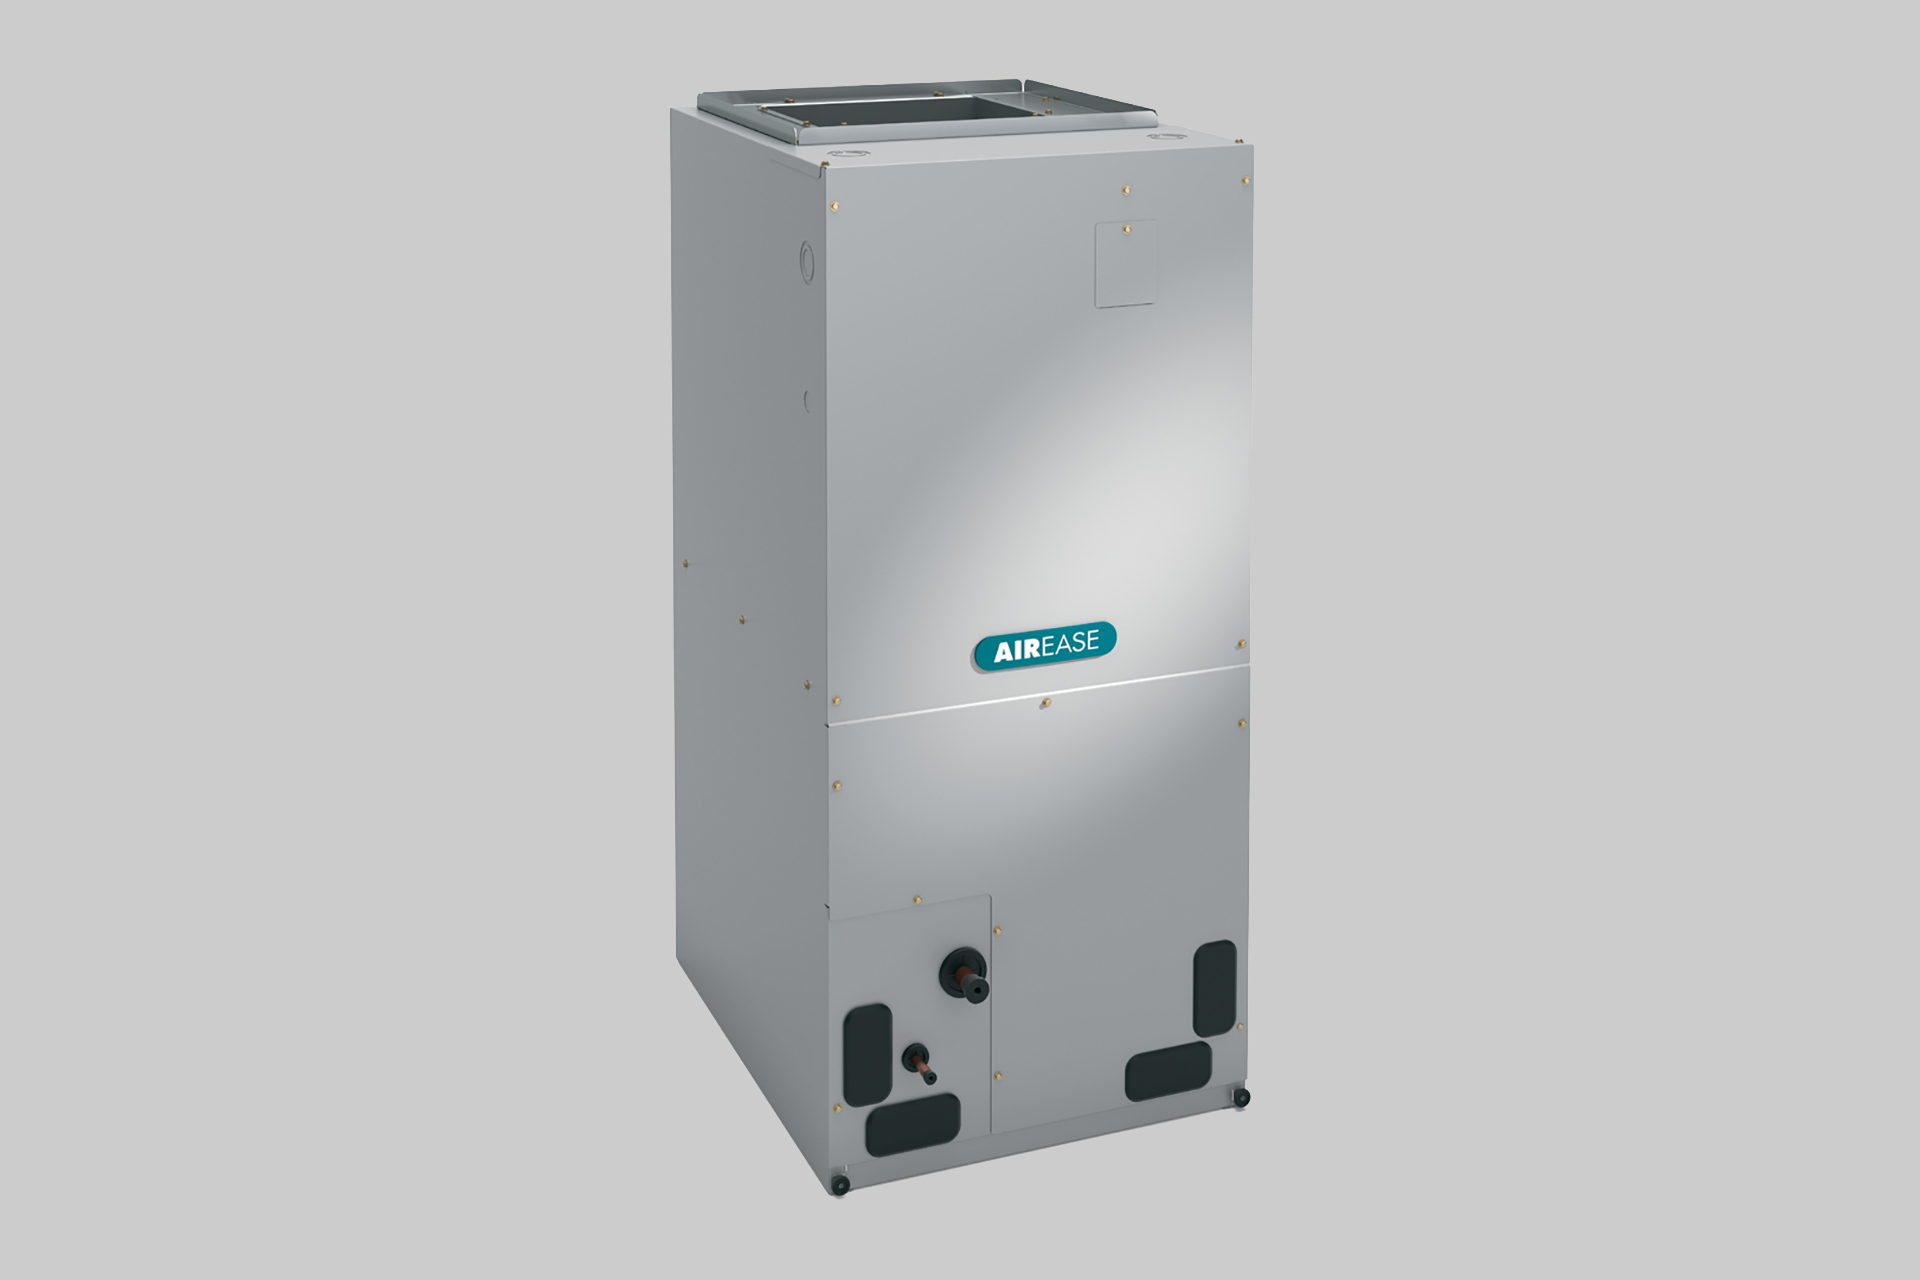 https://staging.lakecontractingcelina.com/files/uploads/2021/03/AirEase-AirHandler_1920x1280.jpg